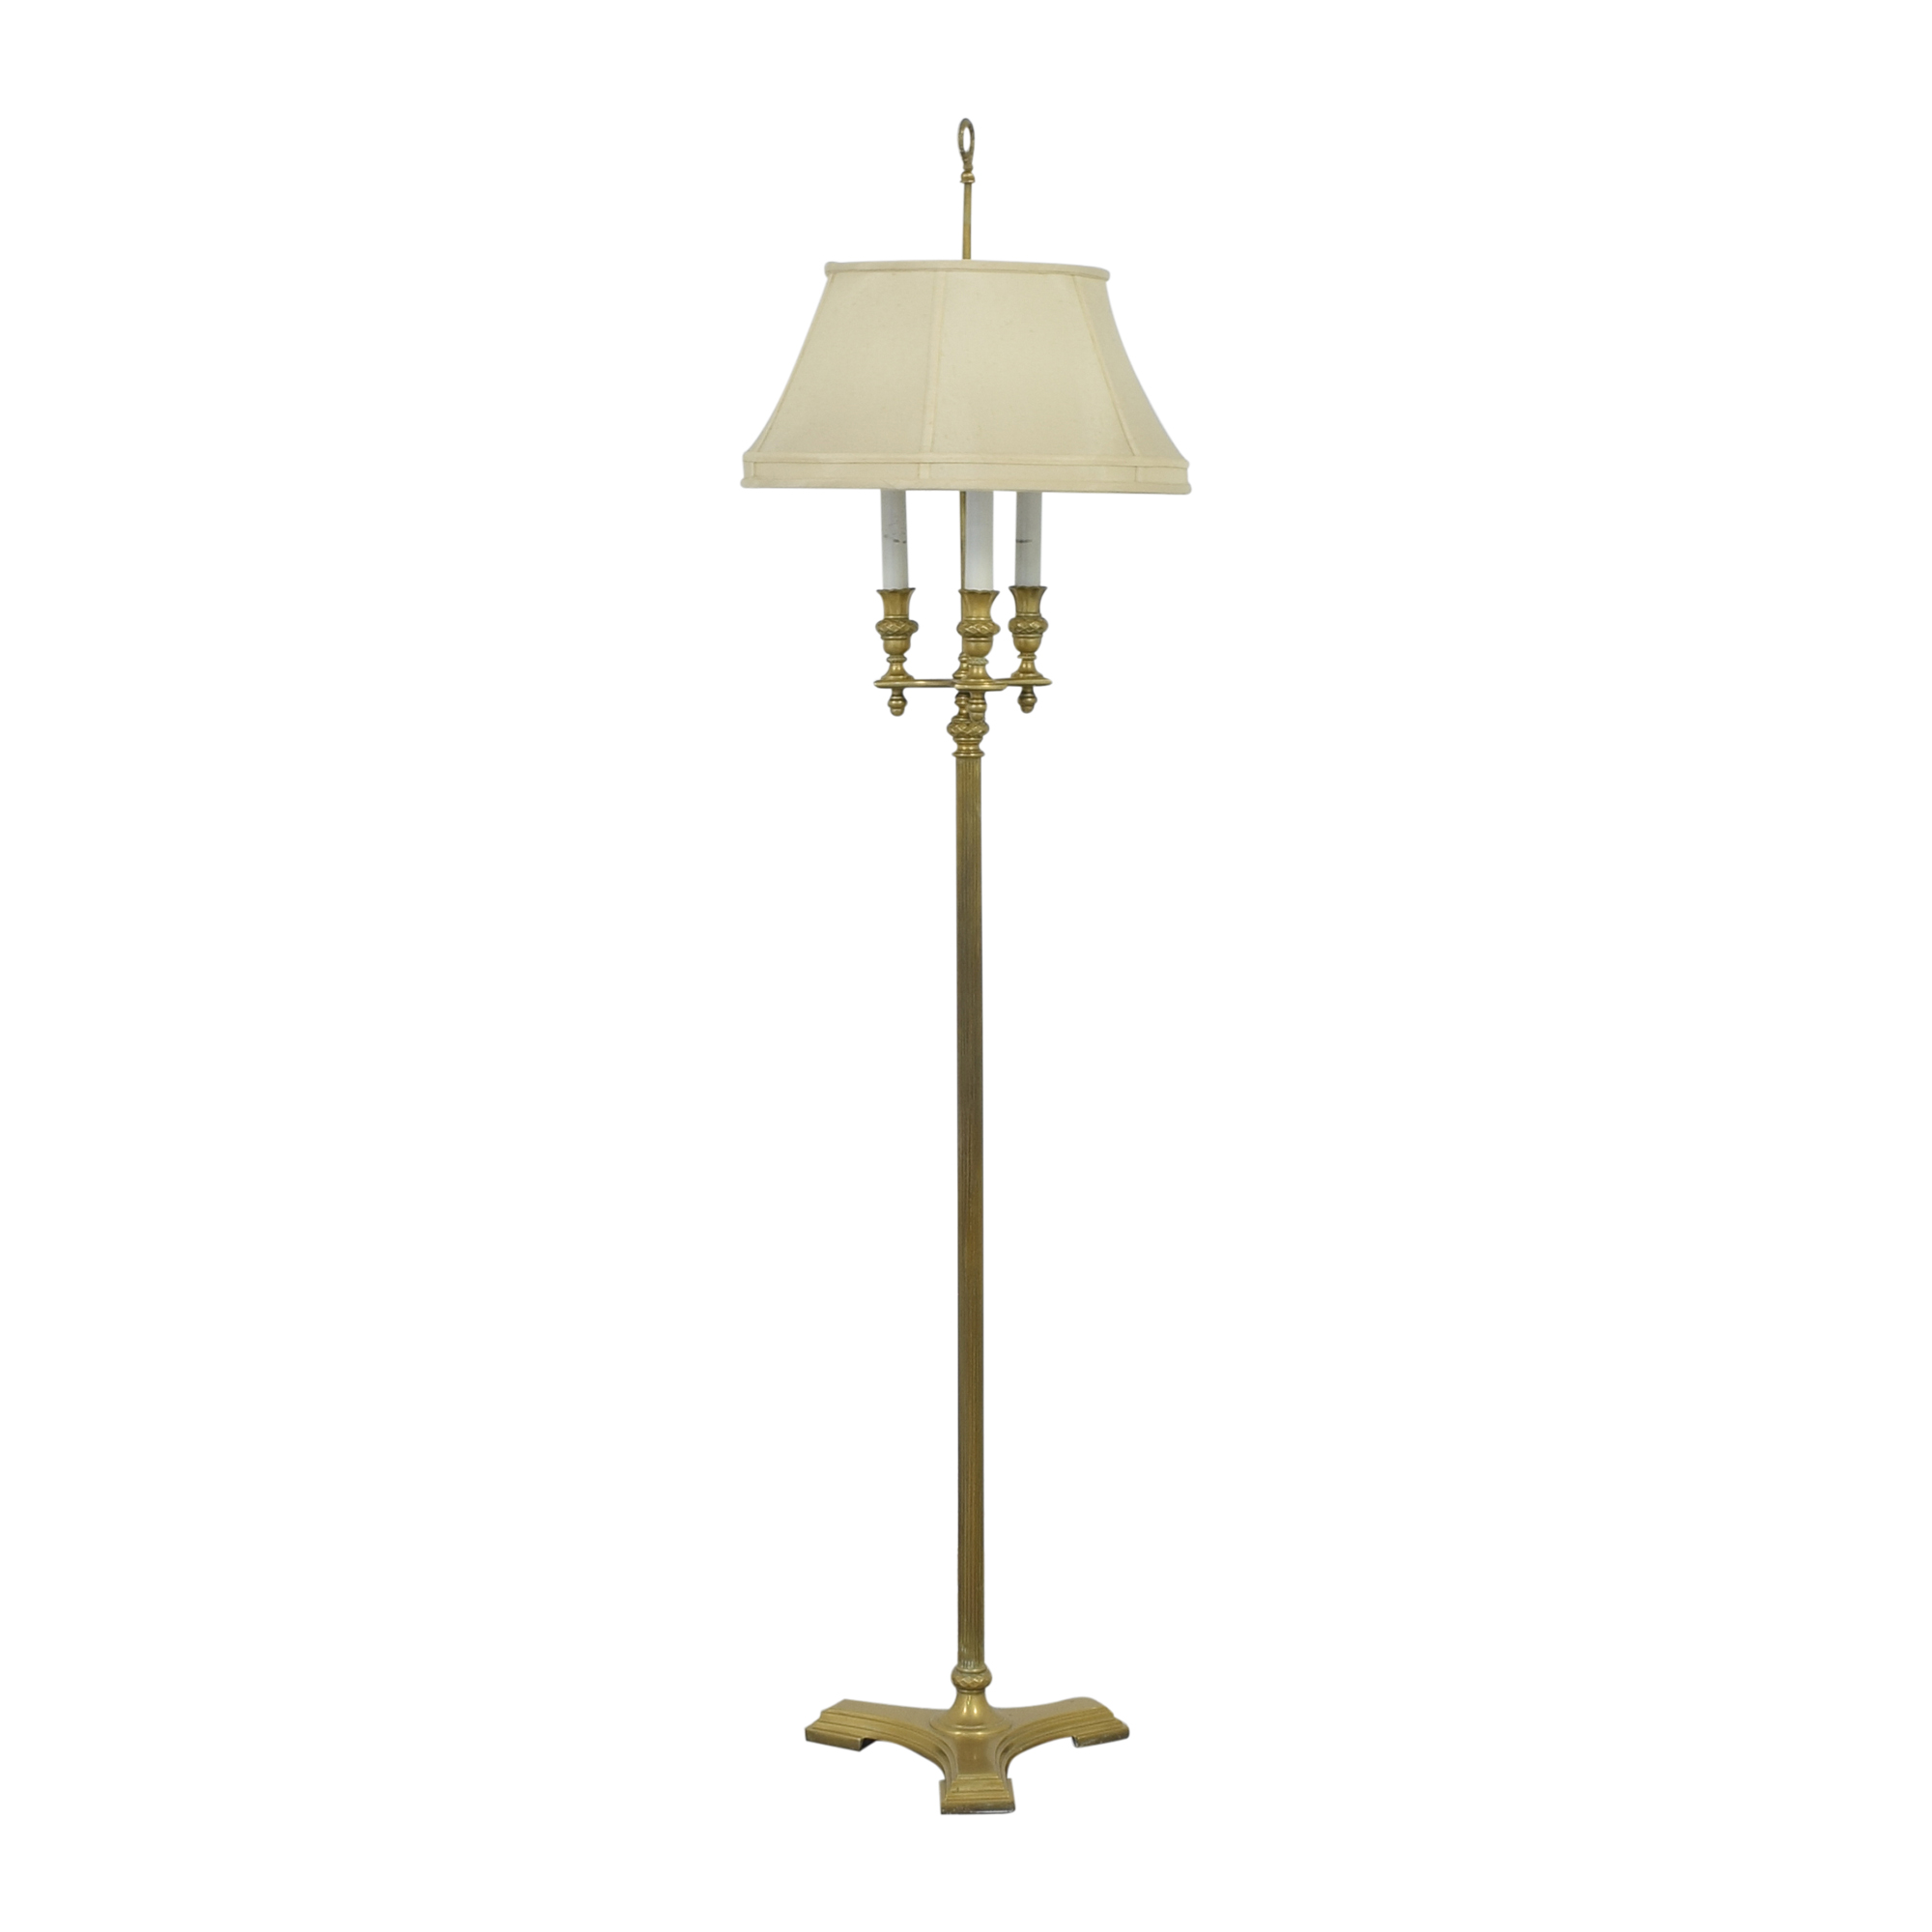 Decorative Crafts Floor Lamp / Lamps